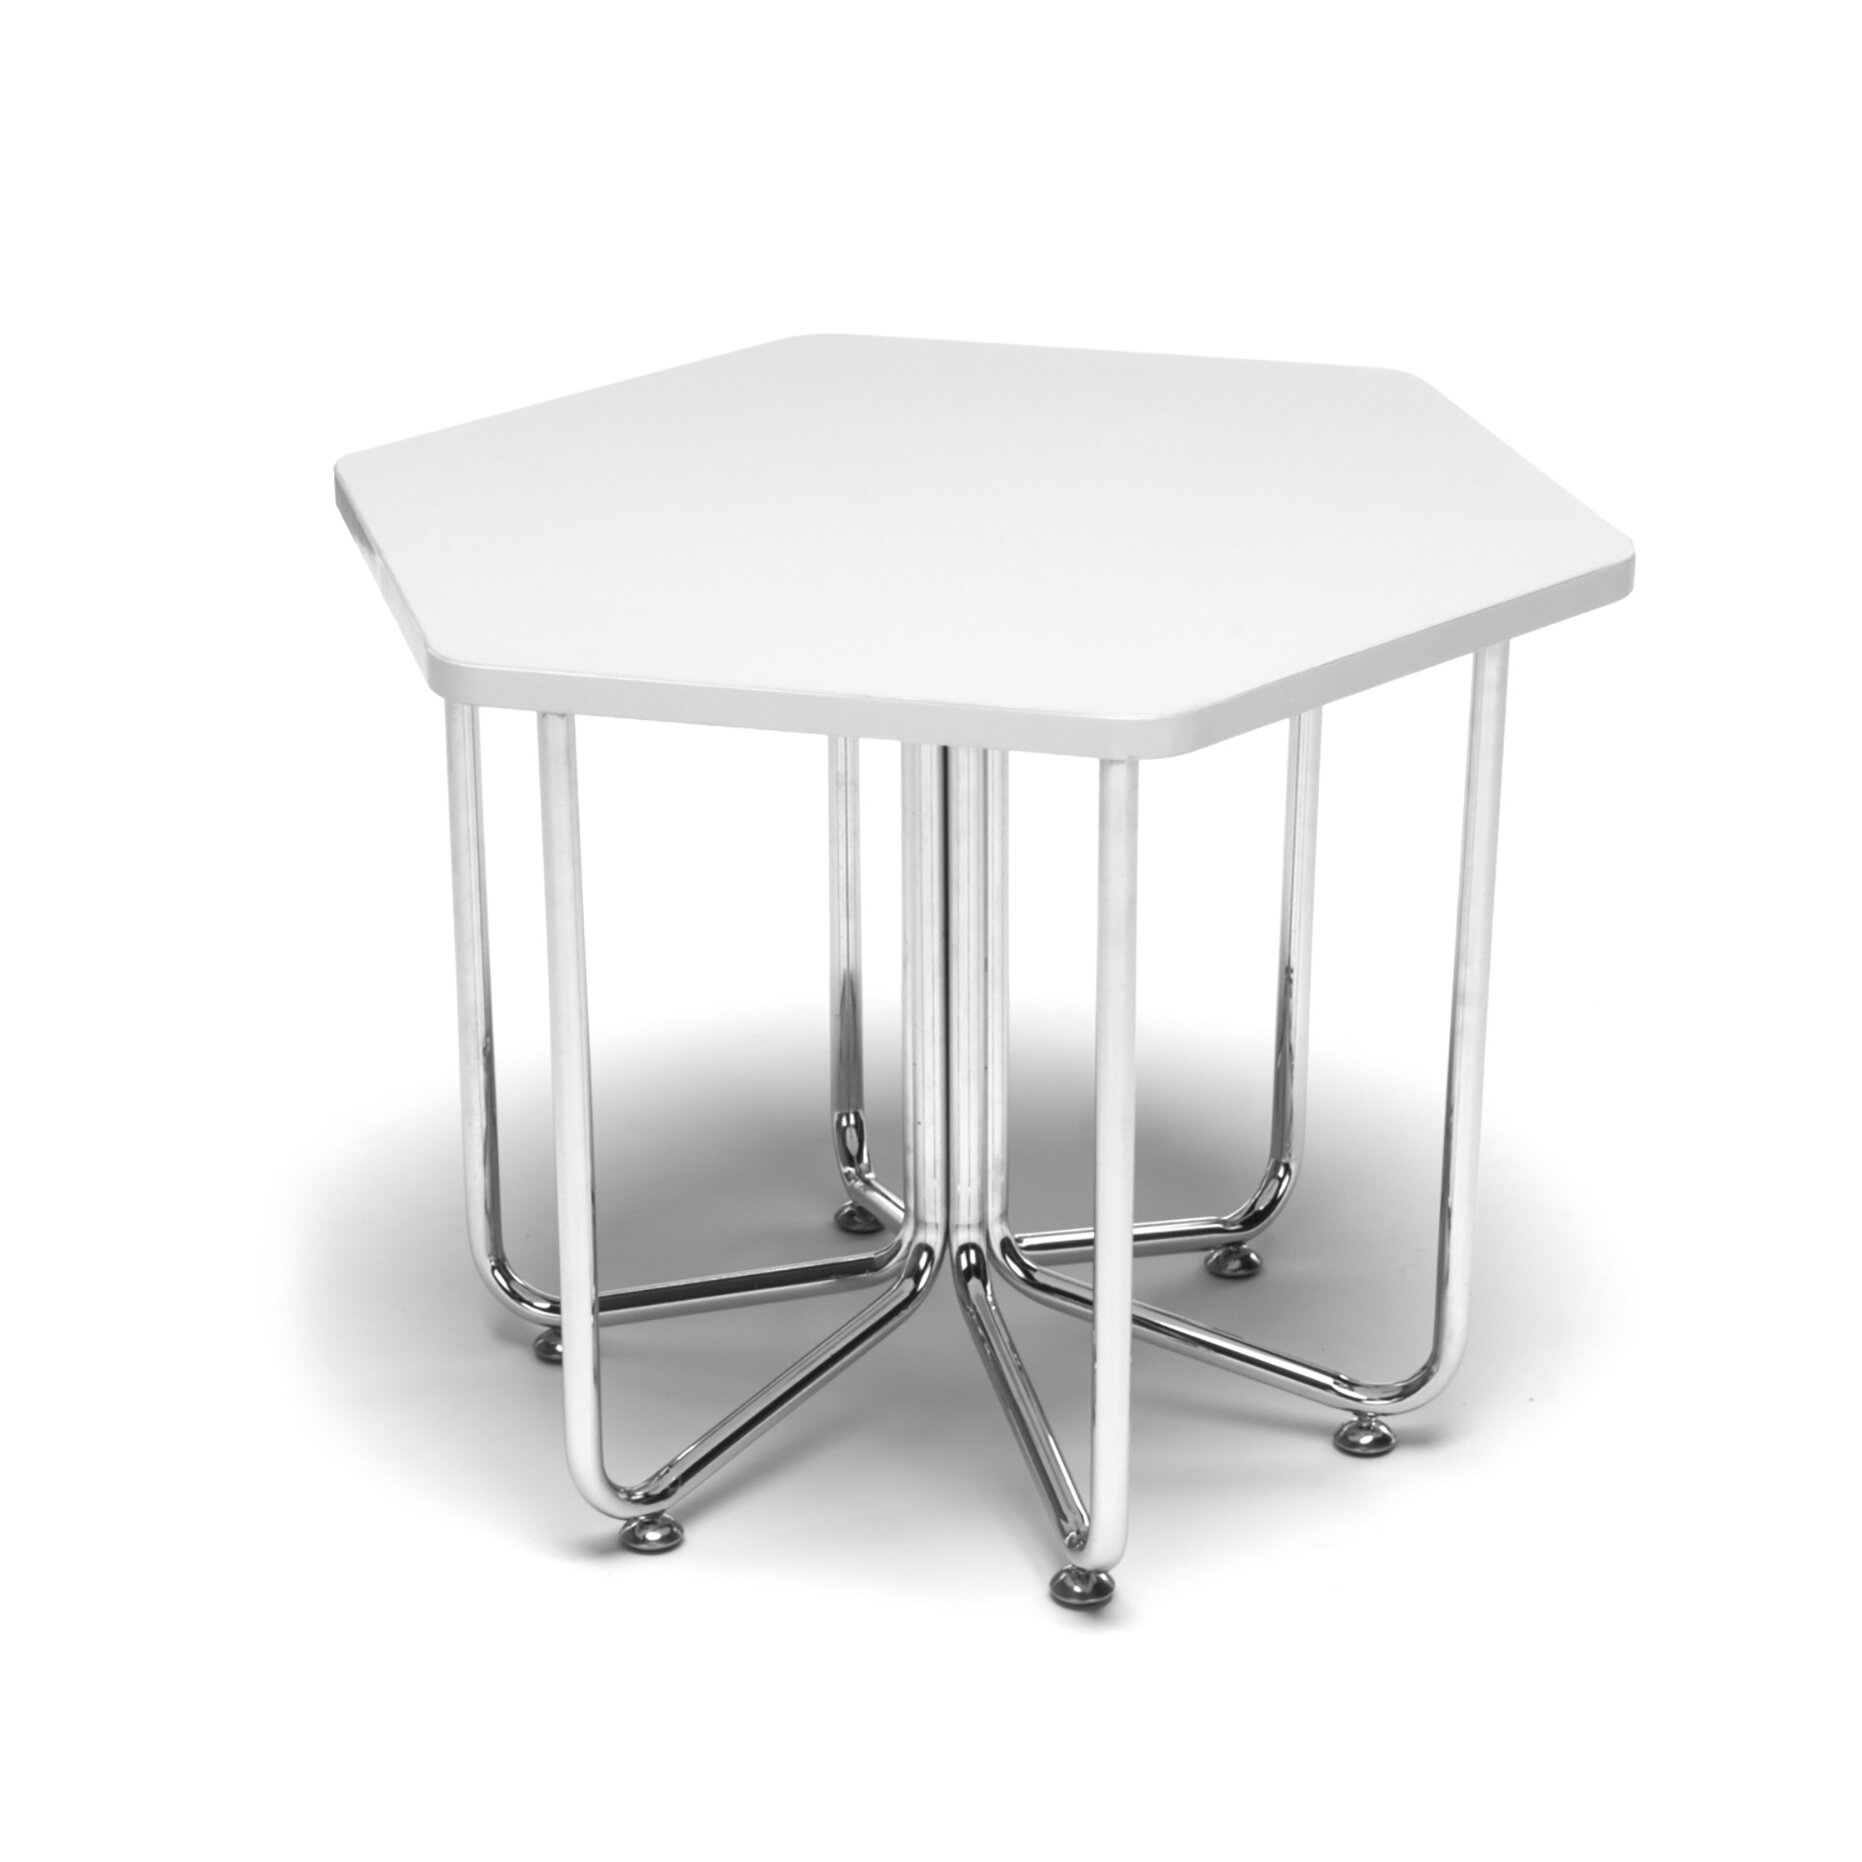 Classroom hexagon table pictures to pin on pinterest for Table cuisine 75 x 75